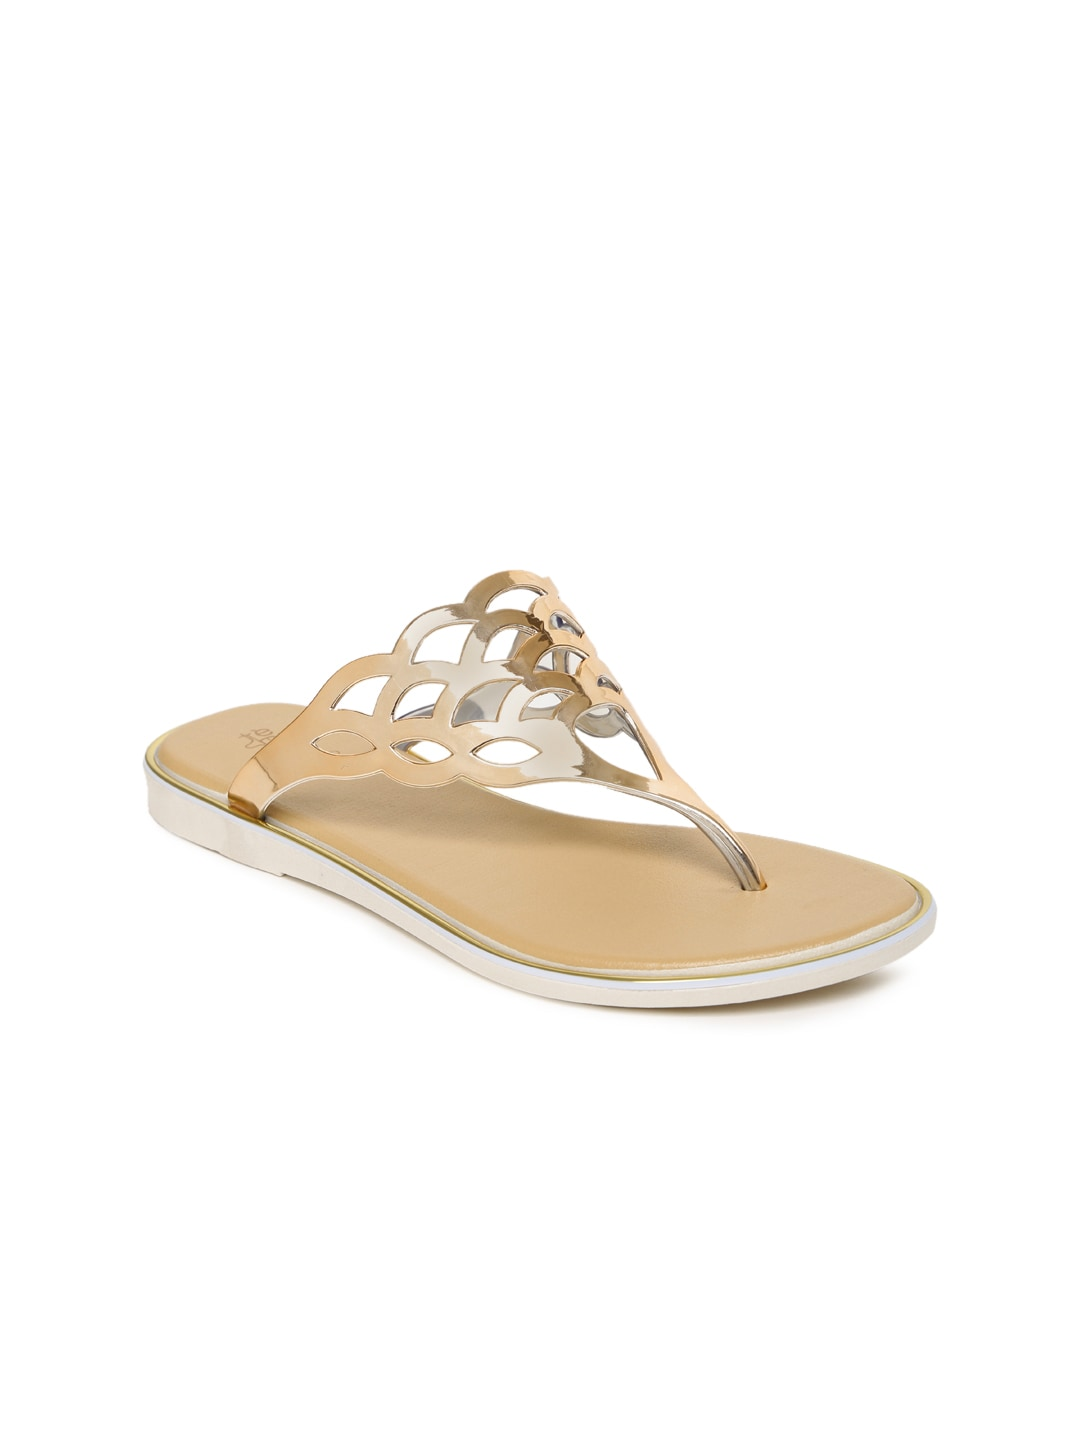 Tresmode Women Gold-Toned Flats with Cut-Outs image